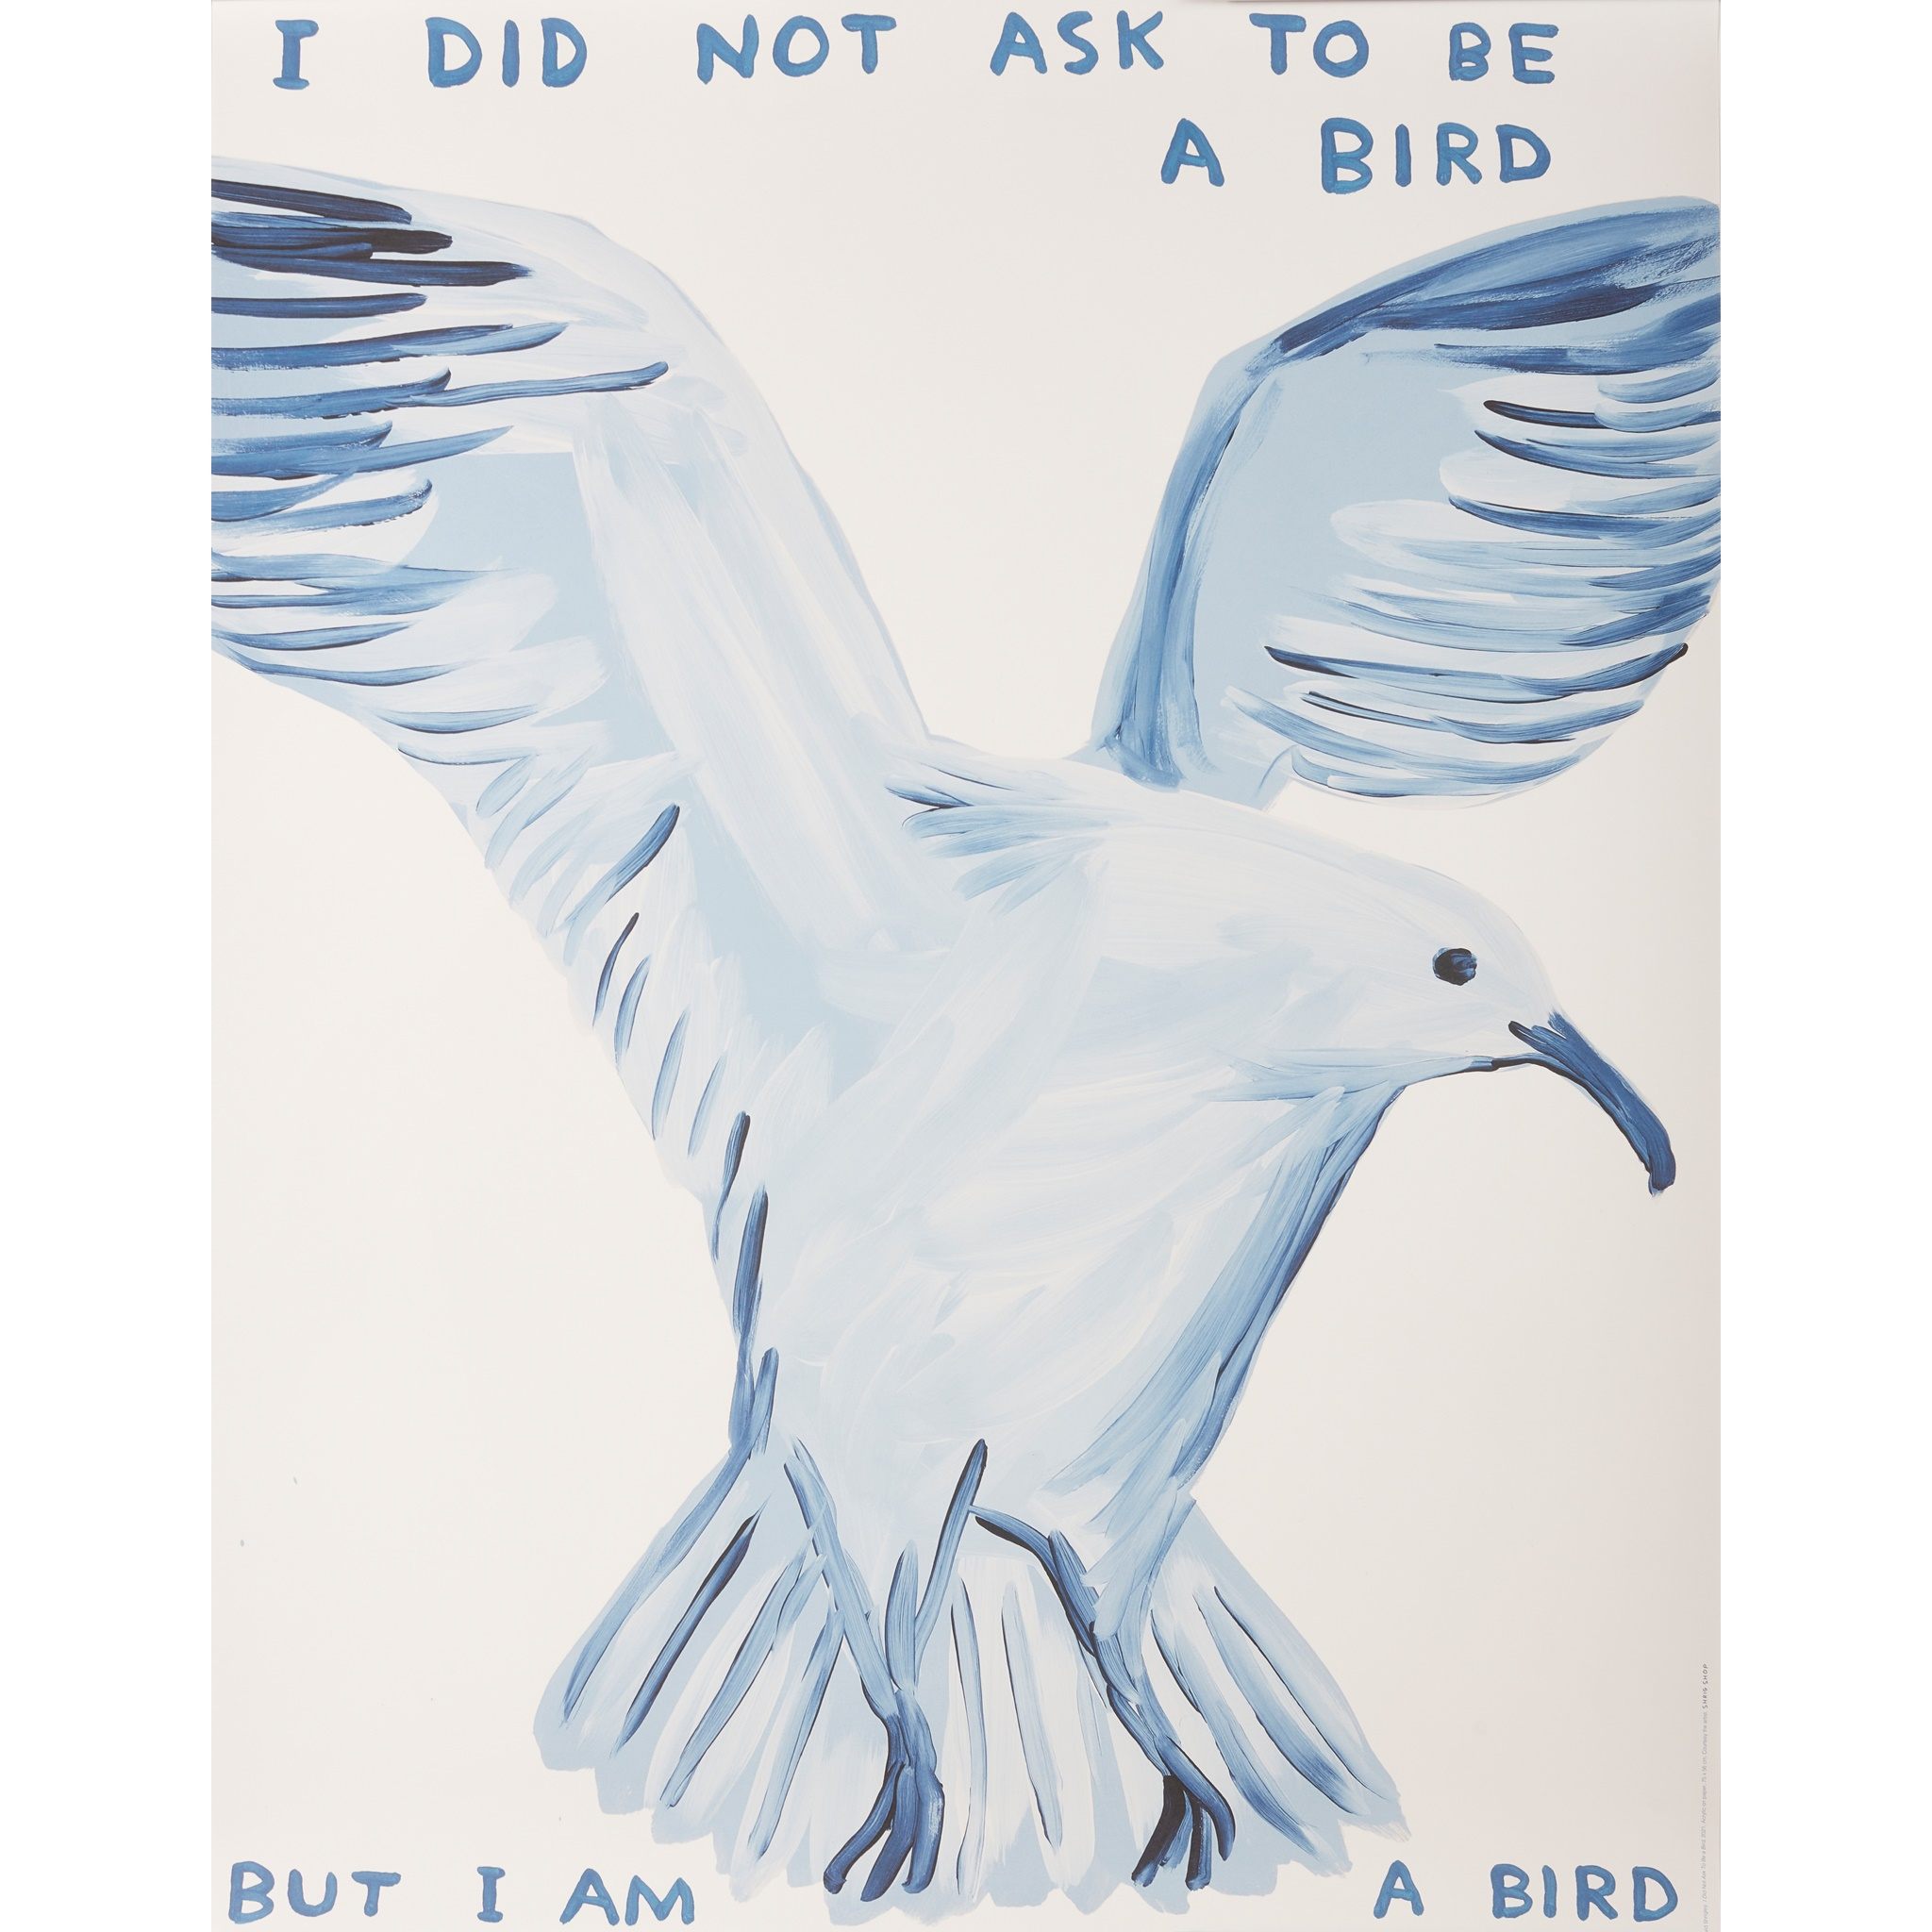 § DAVID SHRIGLEY O.B.E. (BRITISH 1968-) FOUR POSTERS (I DID NOT ASK TO BE A BIRD; PEOPLE EXPECT SO - Image 5 of 5